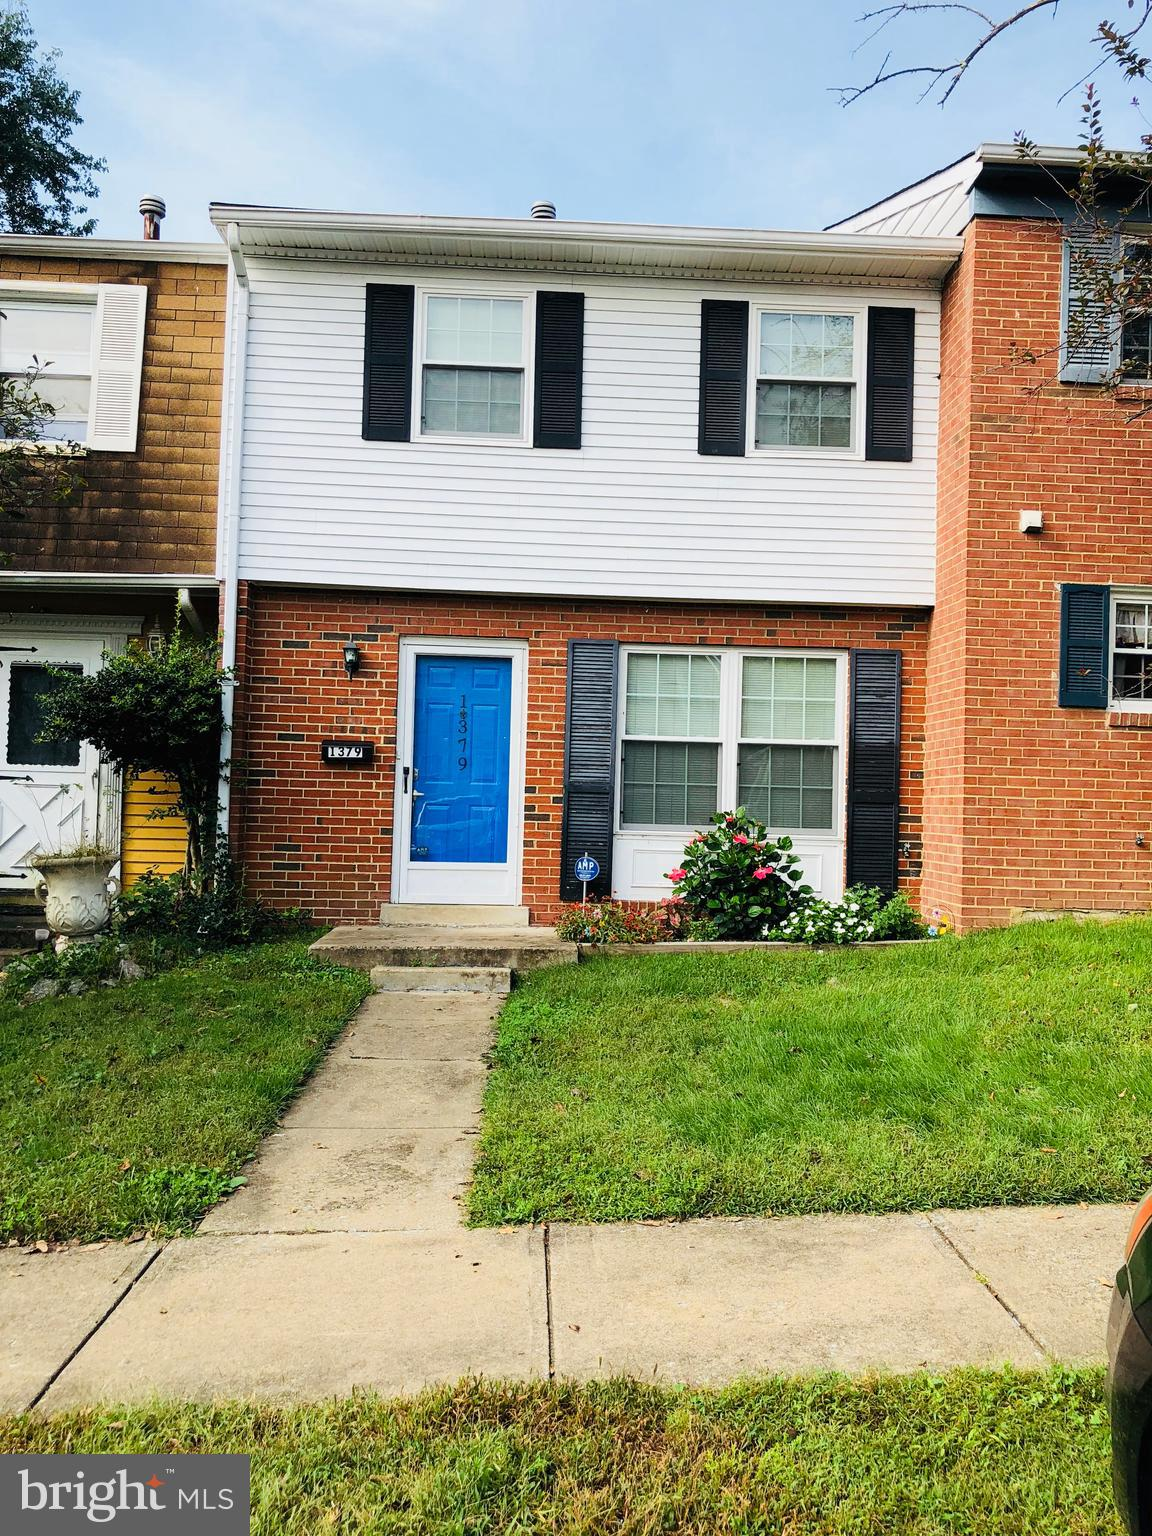 Terrific 2 level townhome features new floors on main + upper level.  Kitchen with updated counters & cabinets and new appliances. Living room has a sliding glass door leading out to a fenced yard with brick patio. Walk-in closet in master bedroom. Community pool! Assigned parking